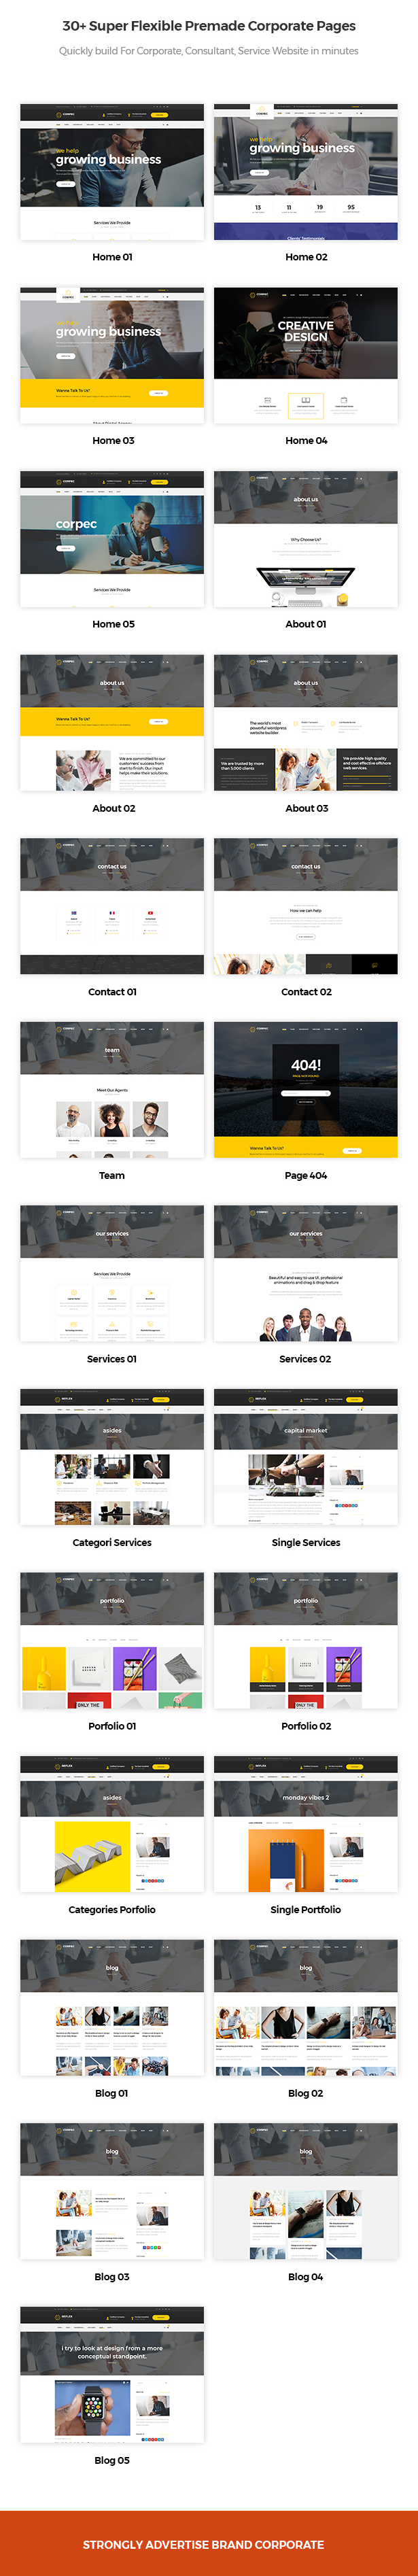 30+ super flexible premade corporate pages in Corpec Corporate WordPress Theme